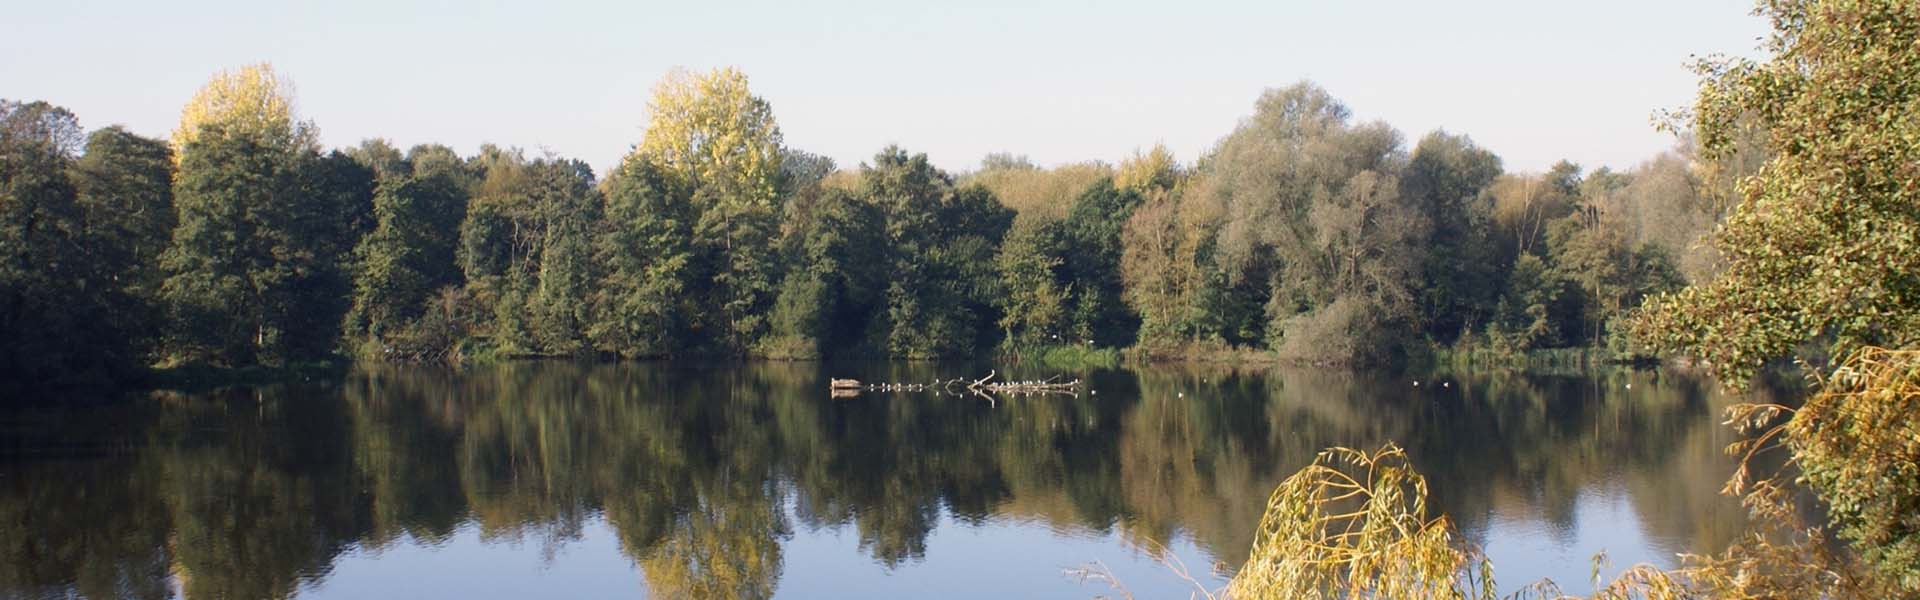 View of lake at Sevenoaks Wildlife Reserve By H W Atkins